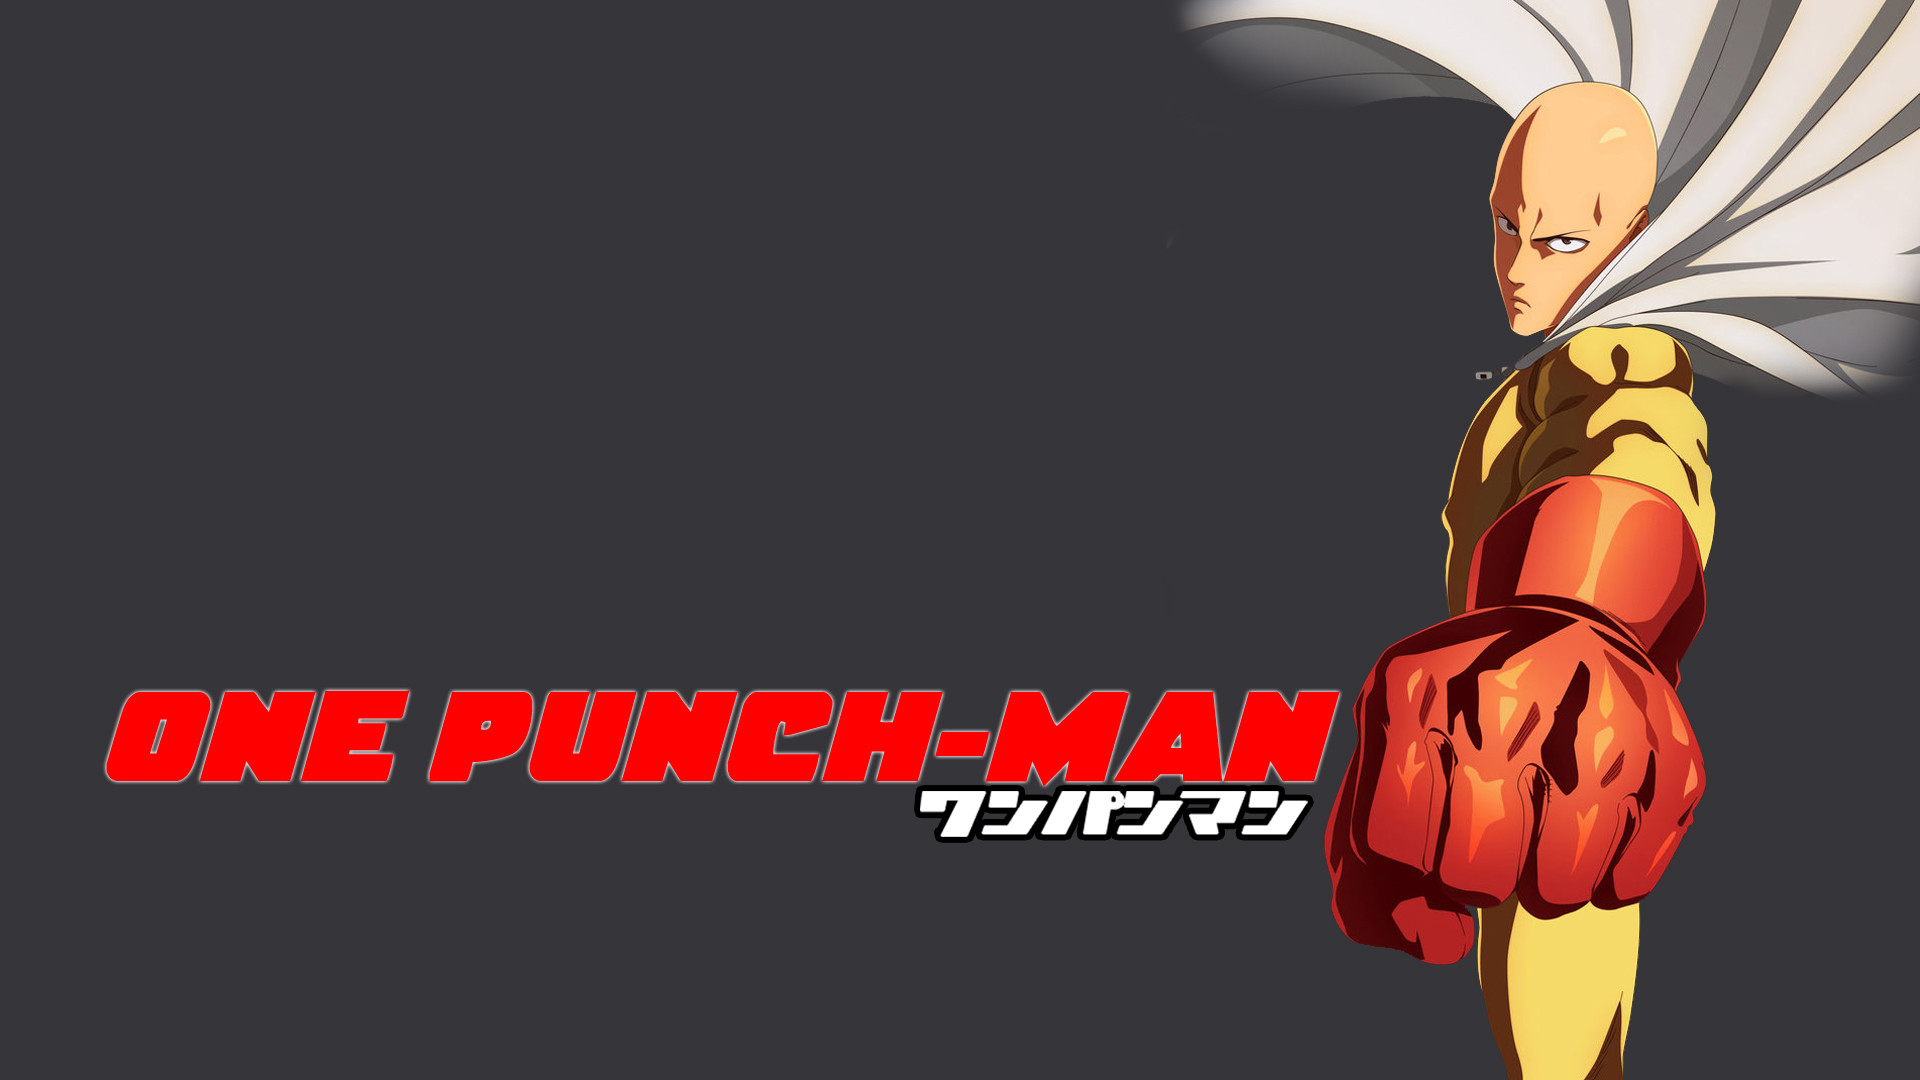 Hd wallpaper one punch man - 1920x1080 One Punch Man Sonic Hd Wallpaper Background Id 672156